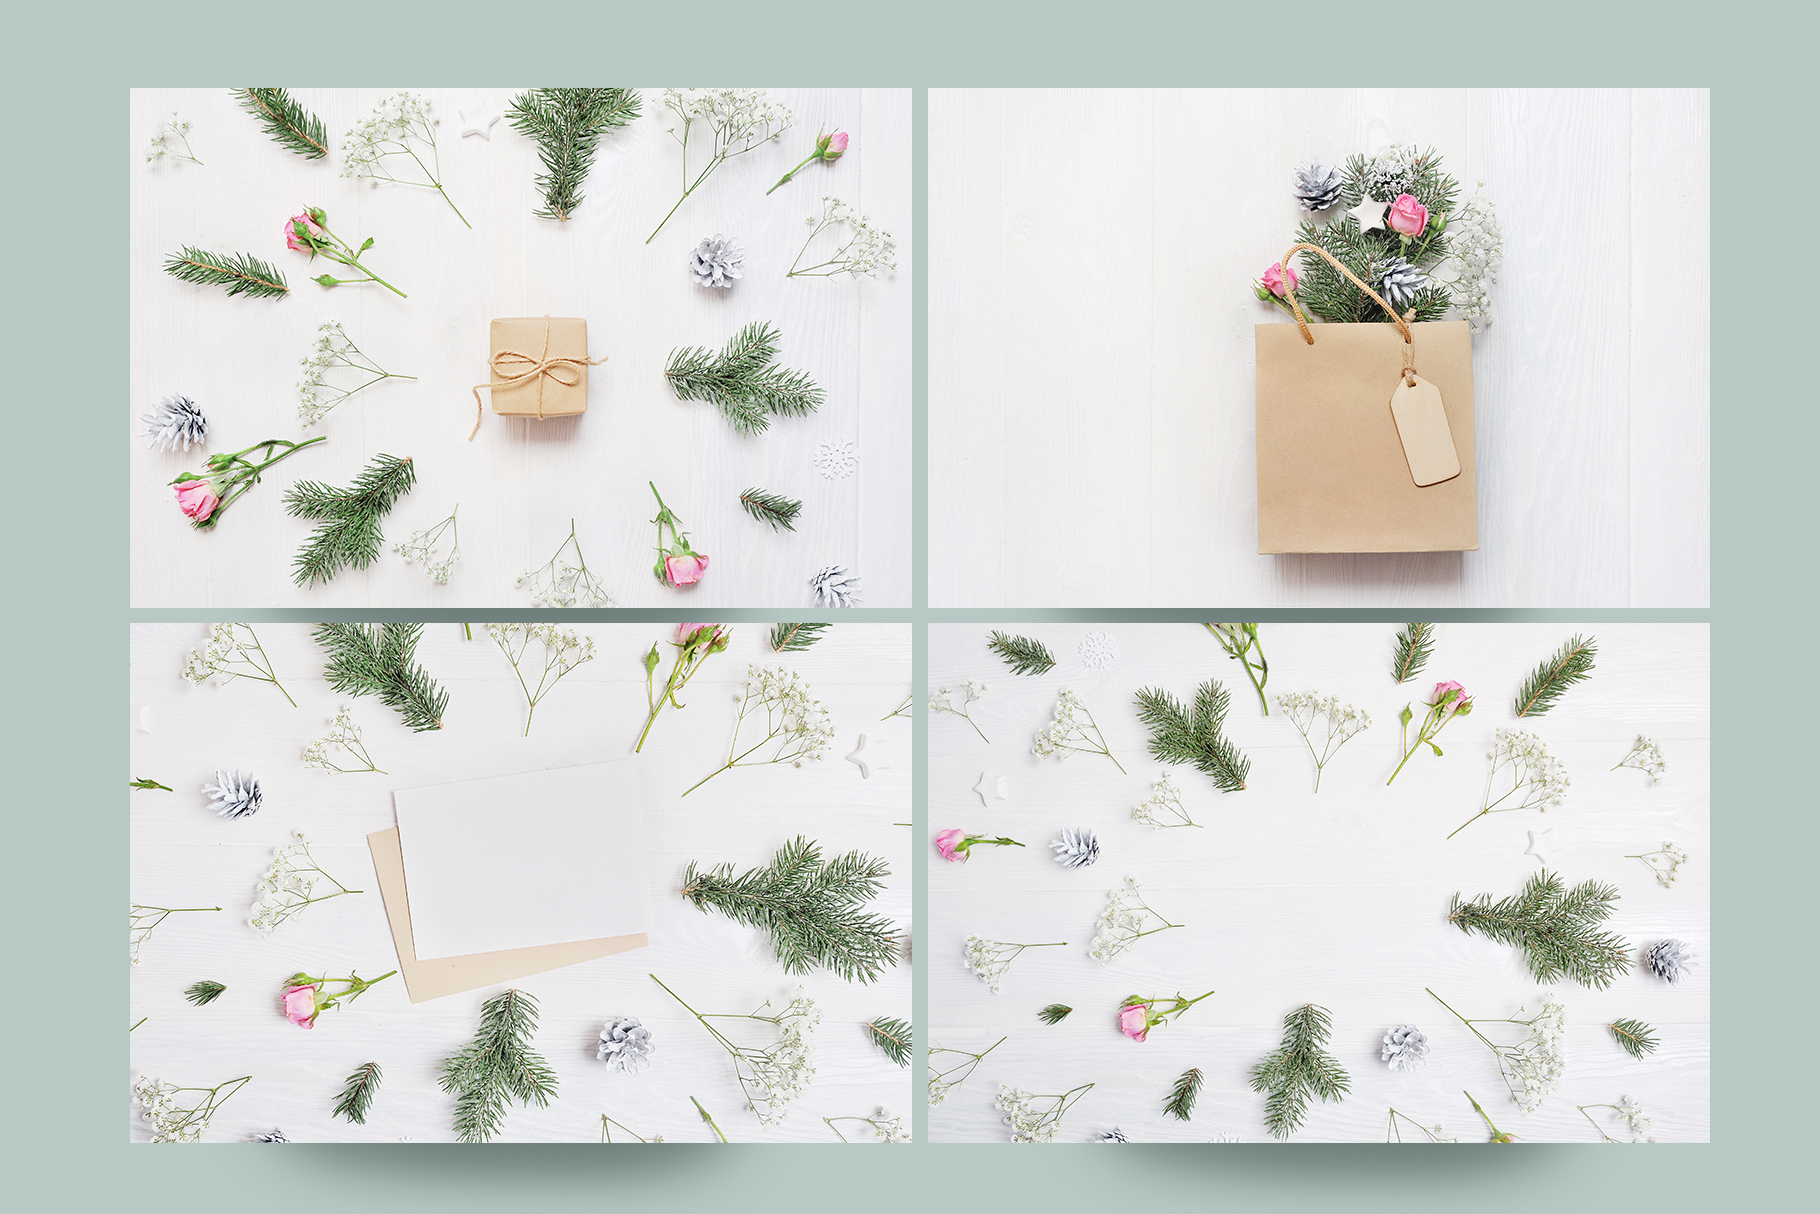 Christmas Photo Pack Graphic By Happy Letters Image 6